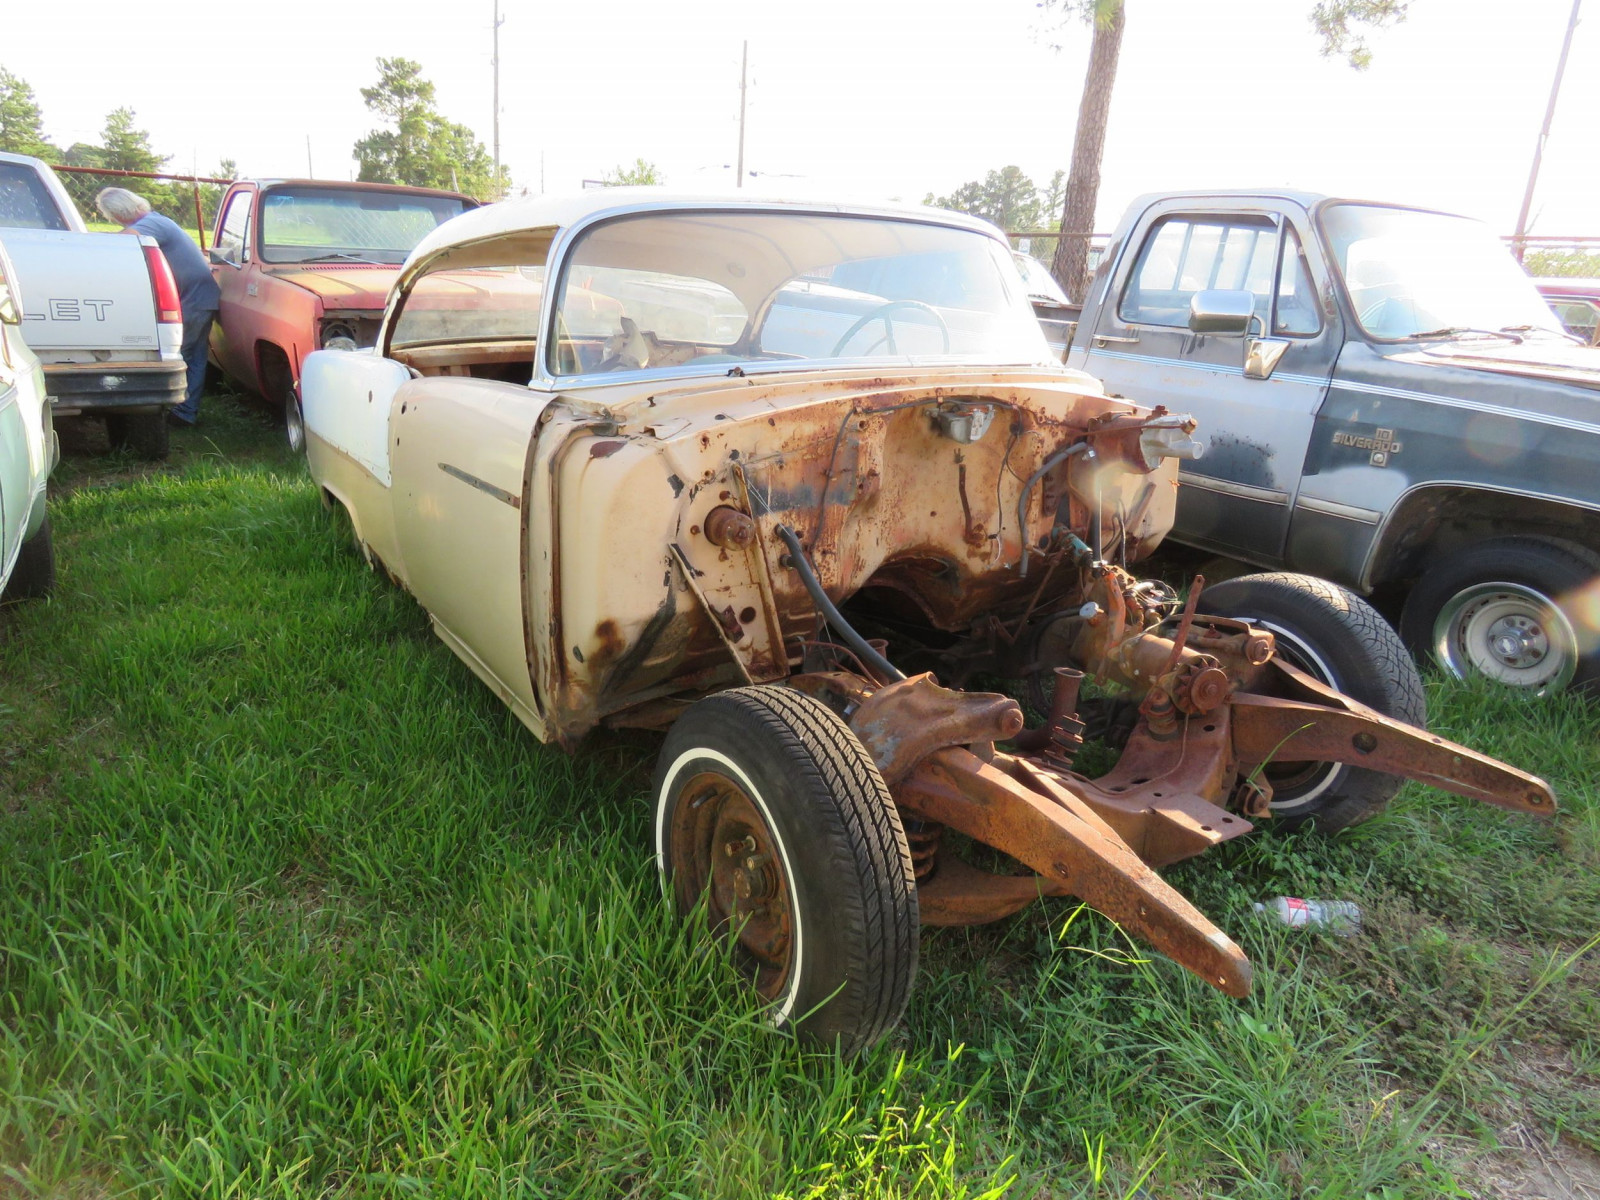 1955 Chevrolet for project - Image 2